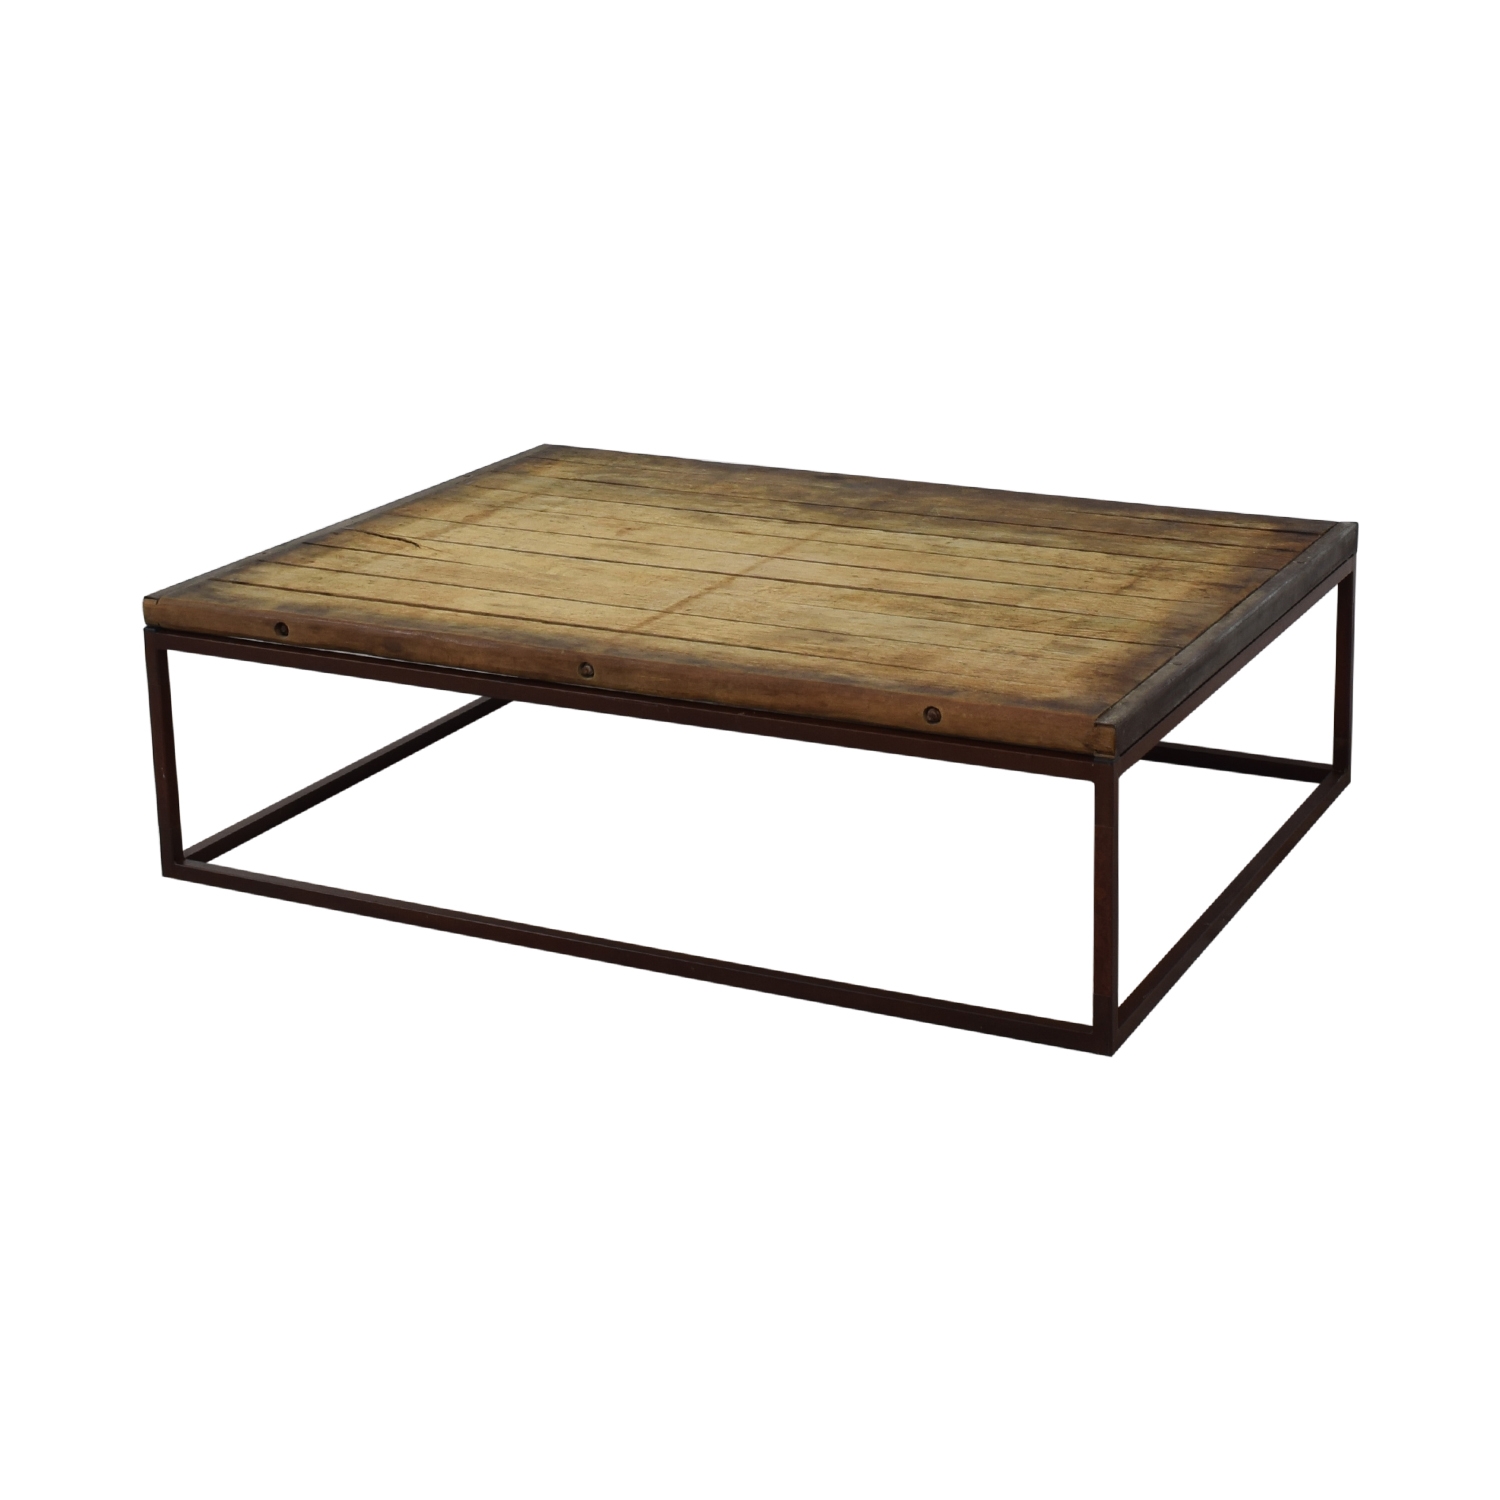 Restoration Hardware Bricklayer's Coffee Table / Coffee Tables